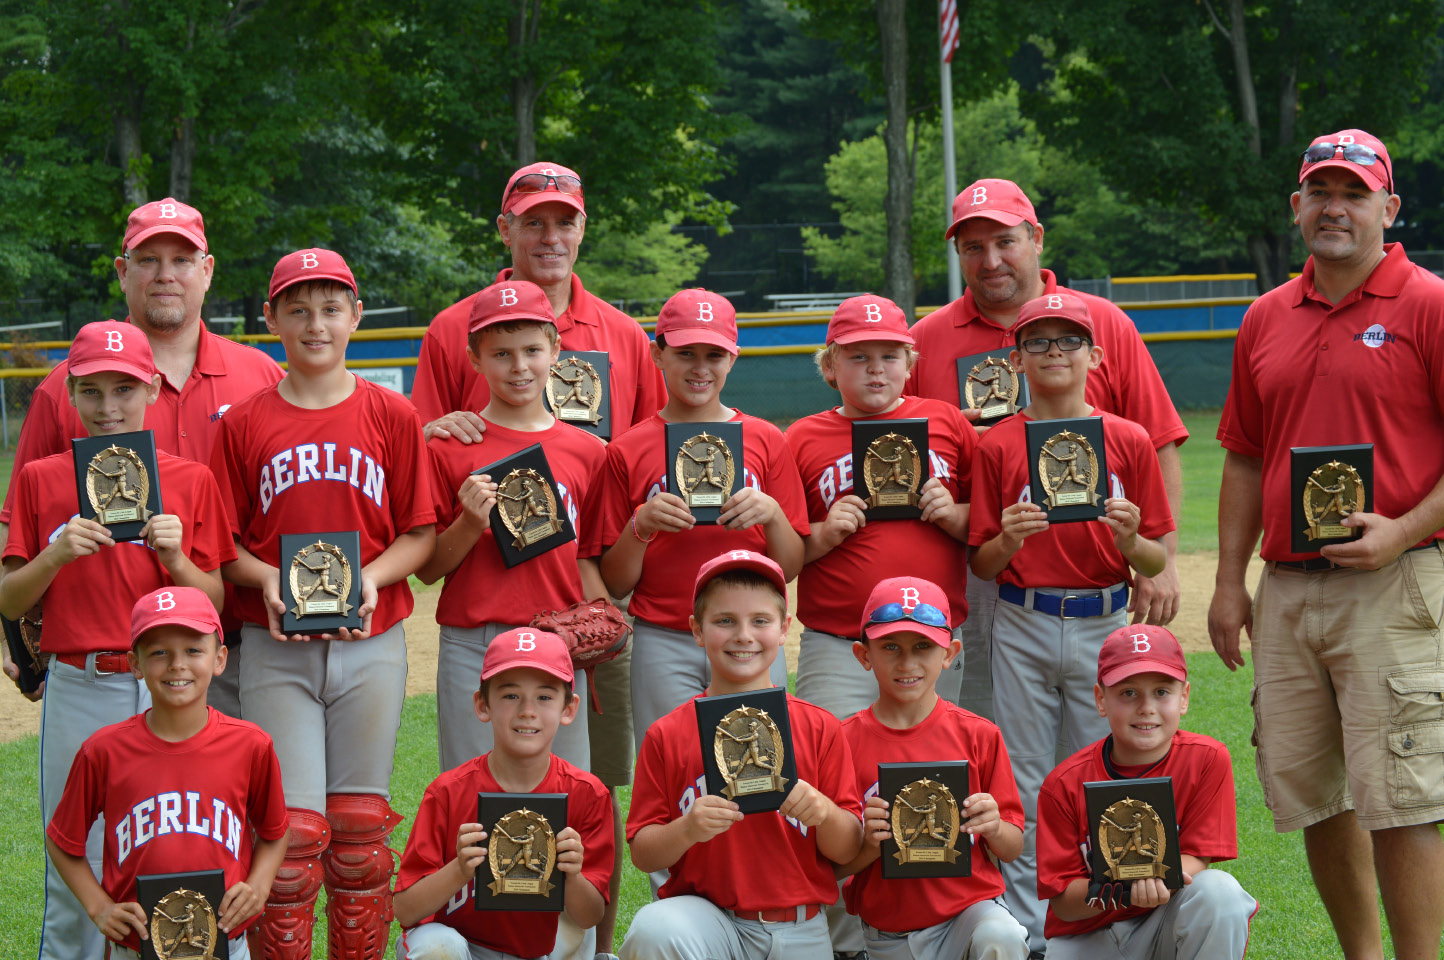 The Berlin Little League Minors tournament team won the championship at the Watson Tournament in Forestville. Front row: Johnny O'Brien, Joey Francalangia, Max Weber, Matthew Zup, Ryan Lavender. Second row: Ryan Scheer, Dominic Radek, Tyler Bergstrom, Evan Chant, Sam Pelkey, A.J. Gafford. Back row: Coaches Kevin Lavender, Fred Bergstrom, Mike Weber and Dave Francalangia. Missing from photo: Coach Jay Riccitelli and Christian Riccitelli.